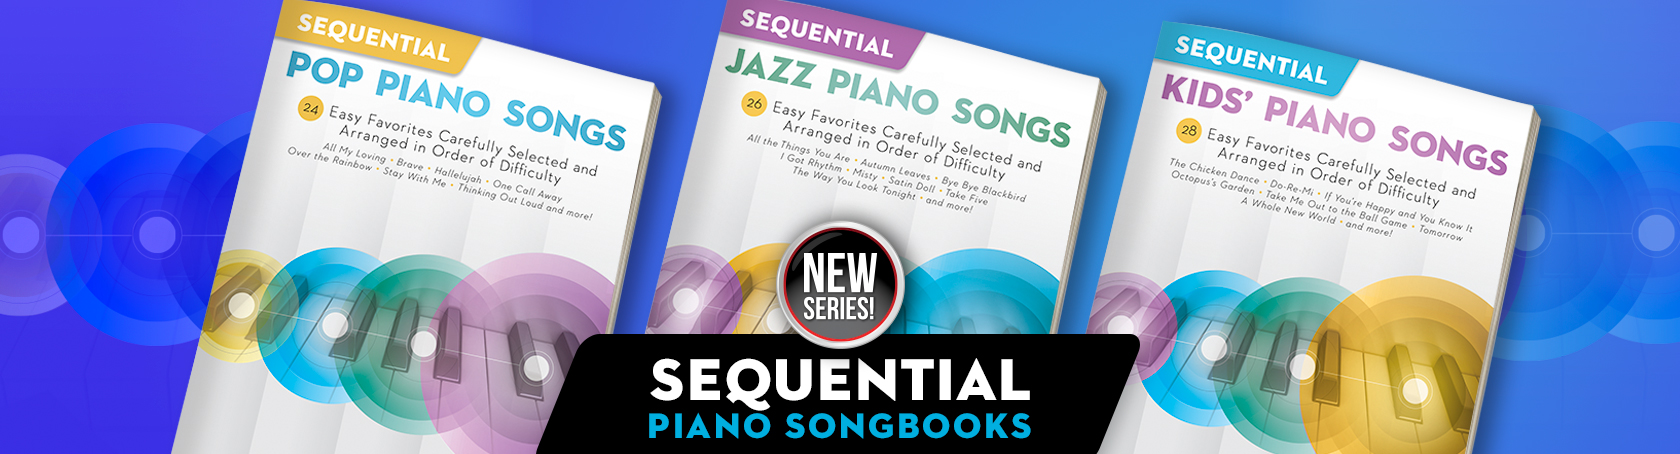 Sequential Piano Songs - New Series!